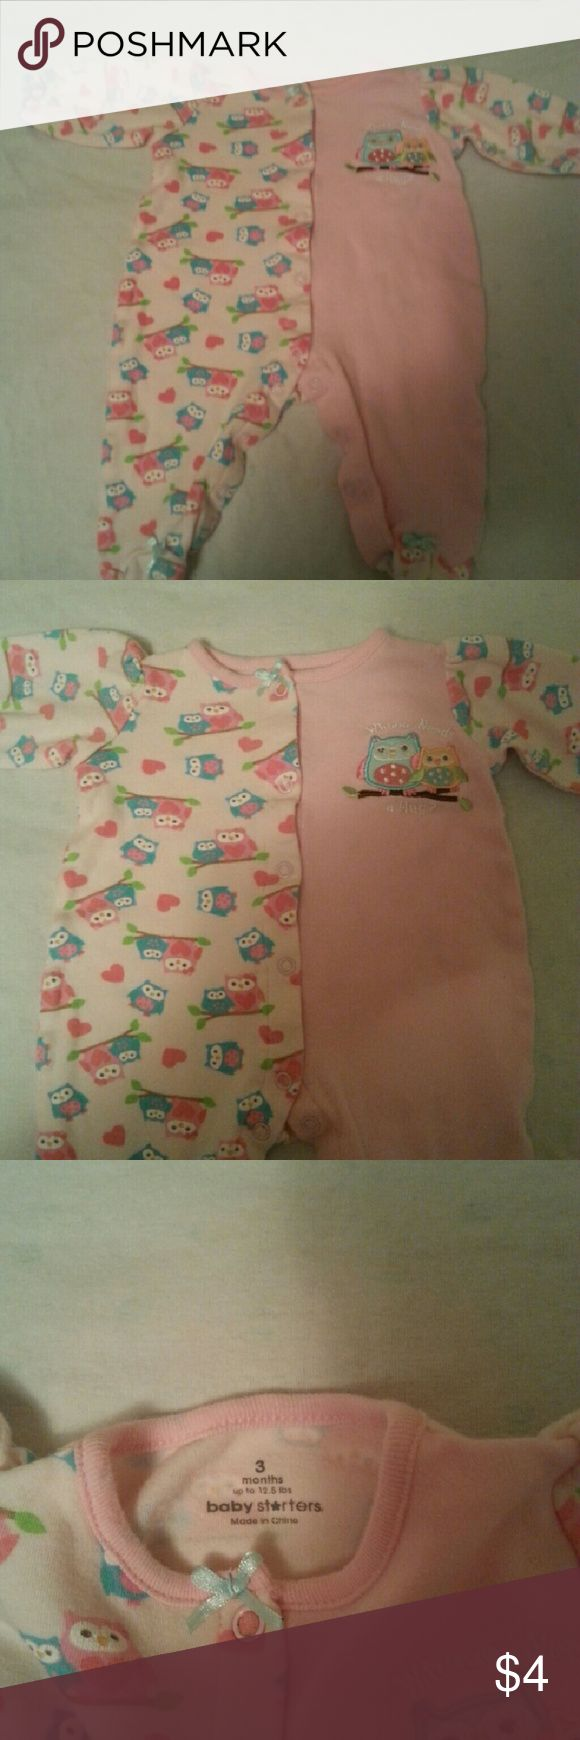 Baby girl clothes Excellent condition Pajamas Pajama Bottoms